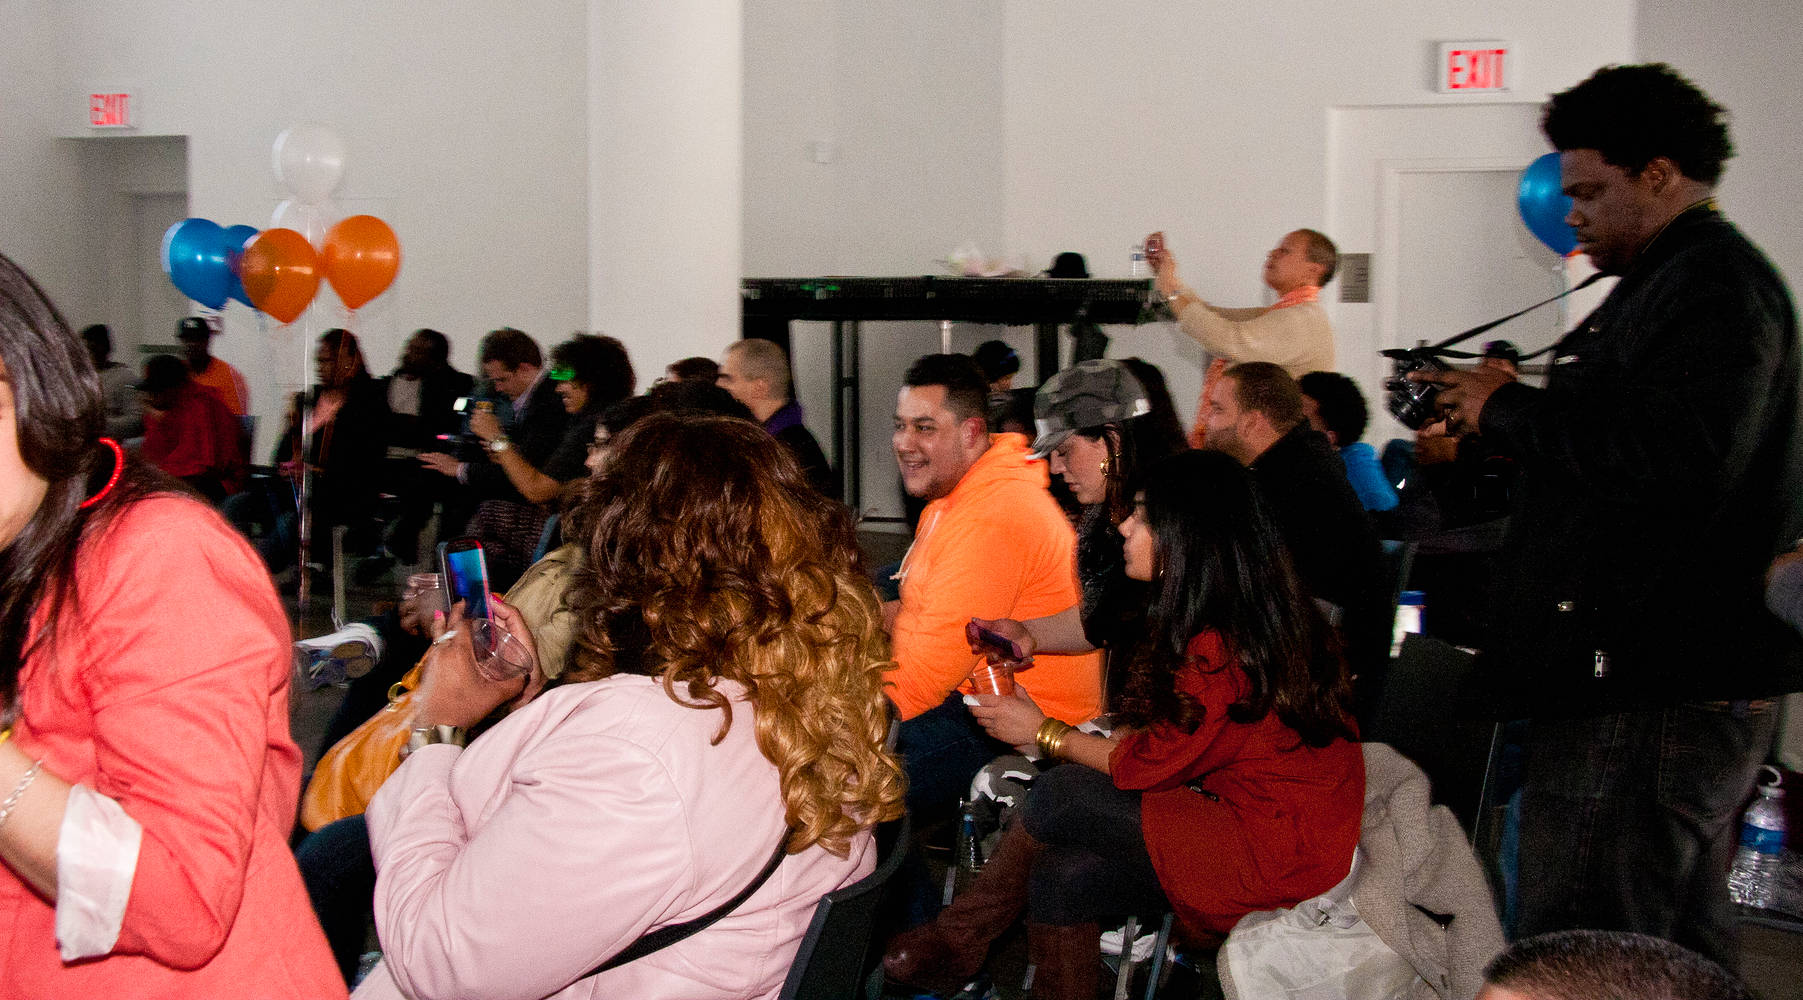 Bx Artist Day Audience having fun by Leenda Bonilla